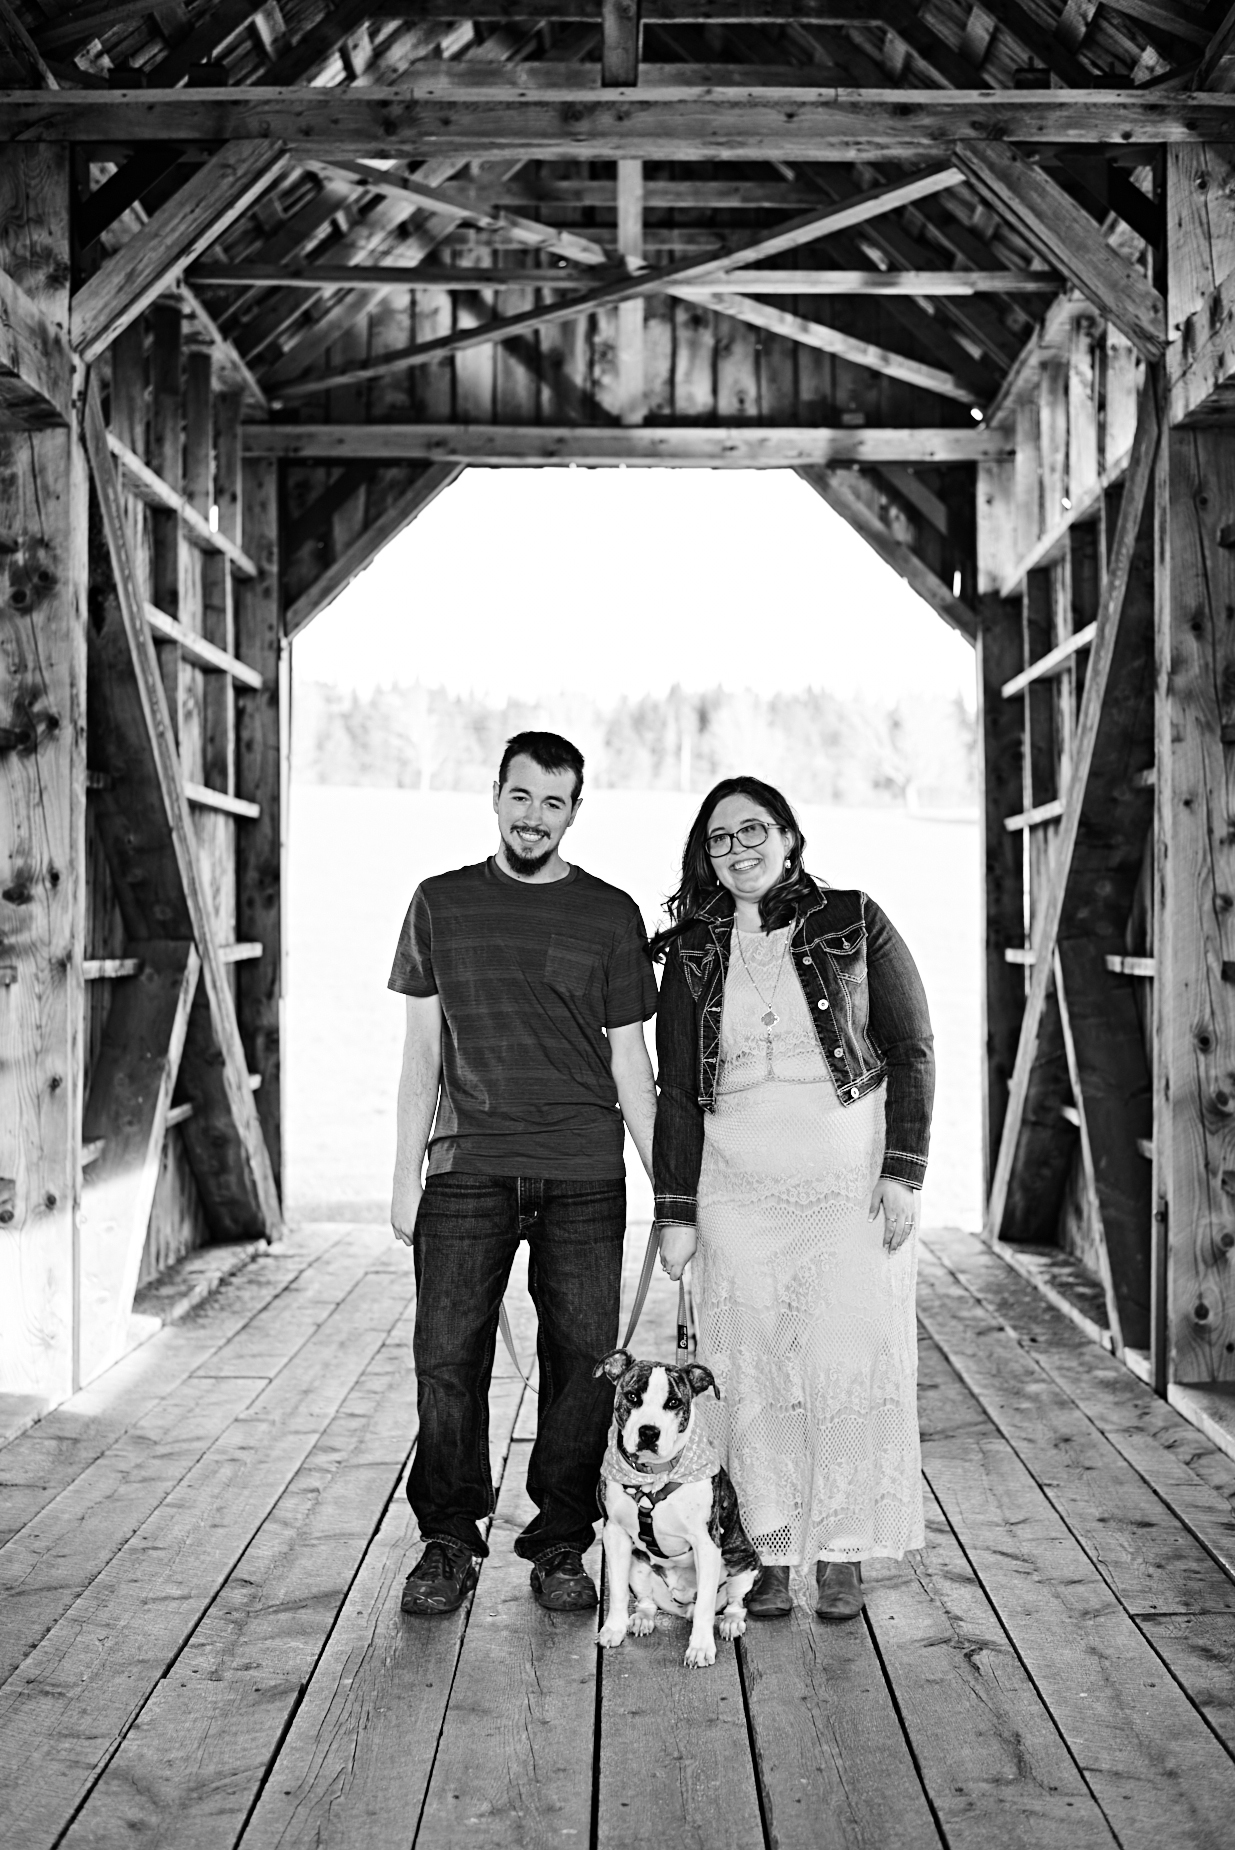 The Green Barn Wedding Photography LLC | New Hampshire and Vermont Engagement Photographer | Covered Bridge Engagement Session in Cabot, VT